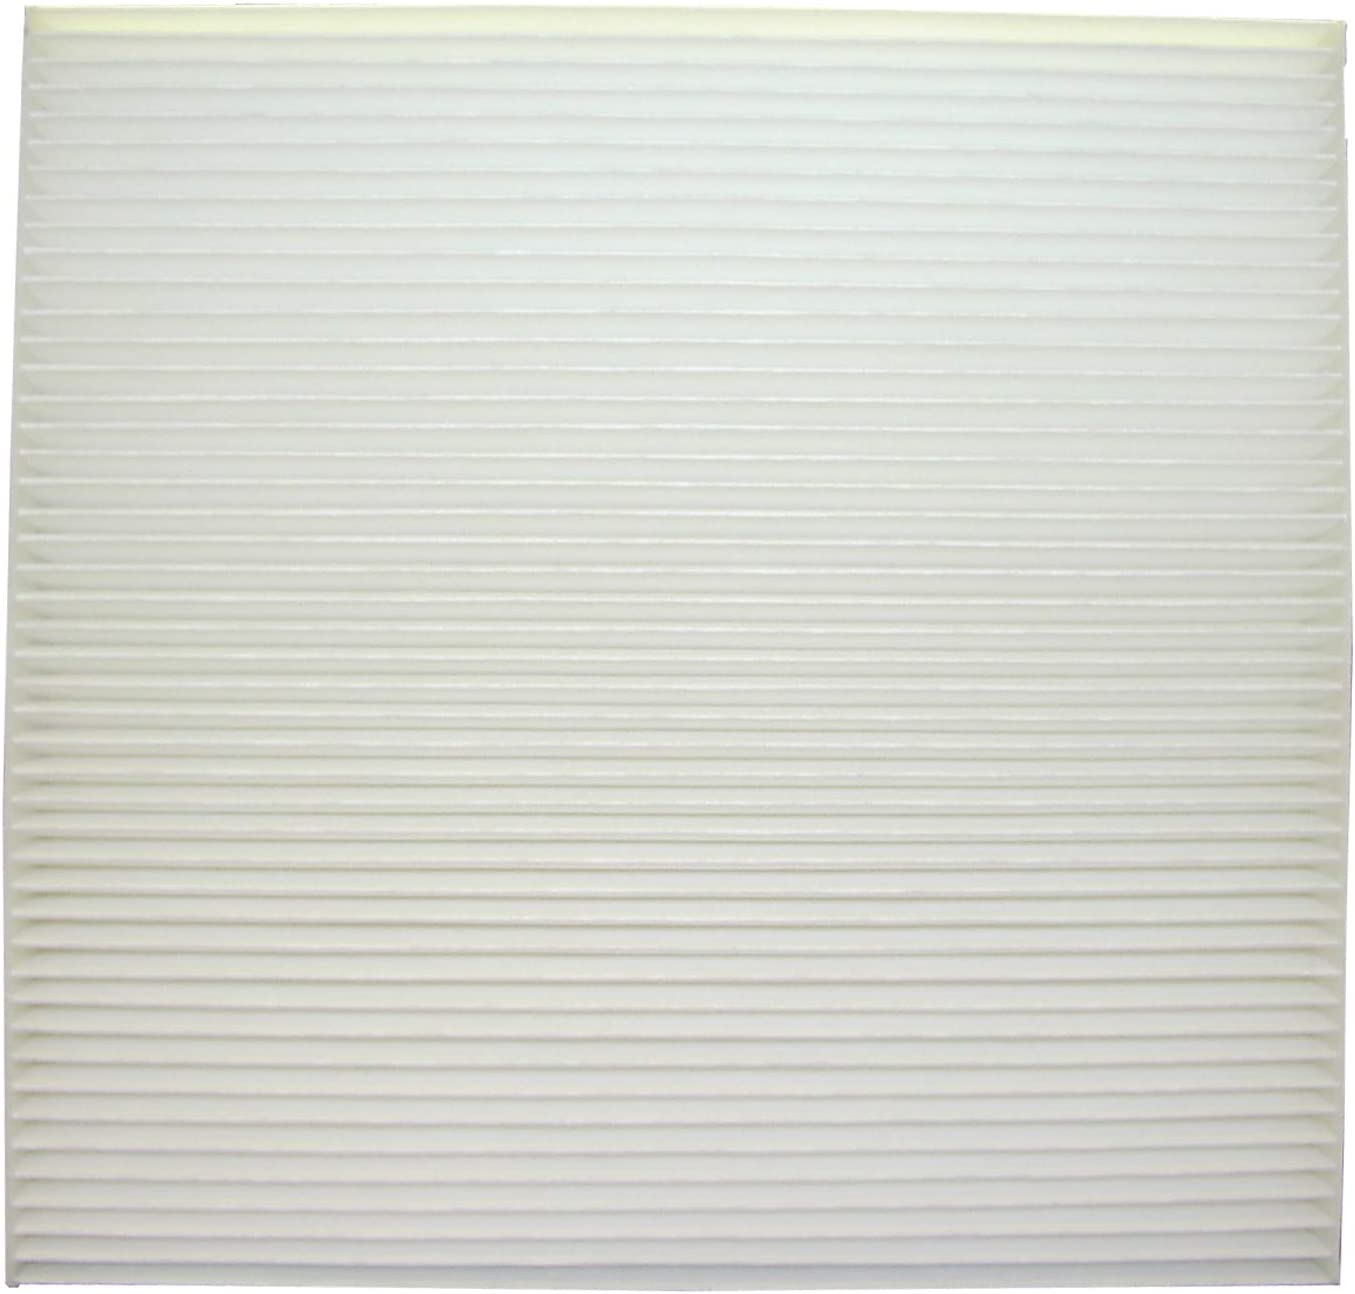 ACDelco CF3159 Professional Cabin Air Filter